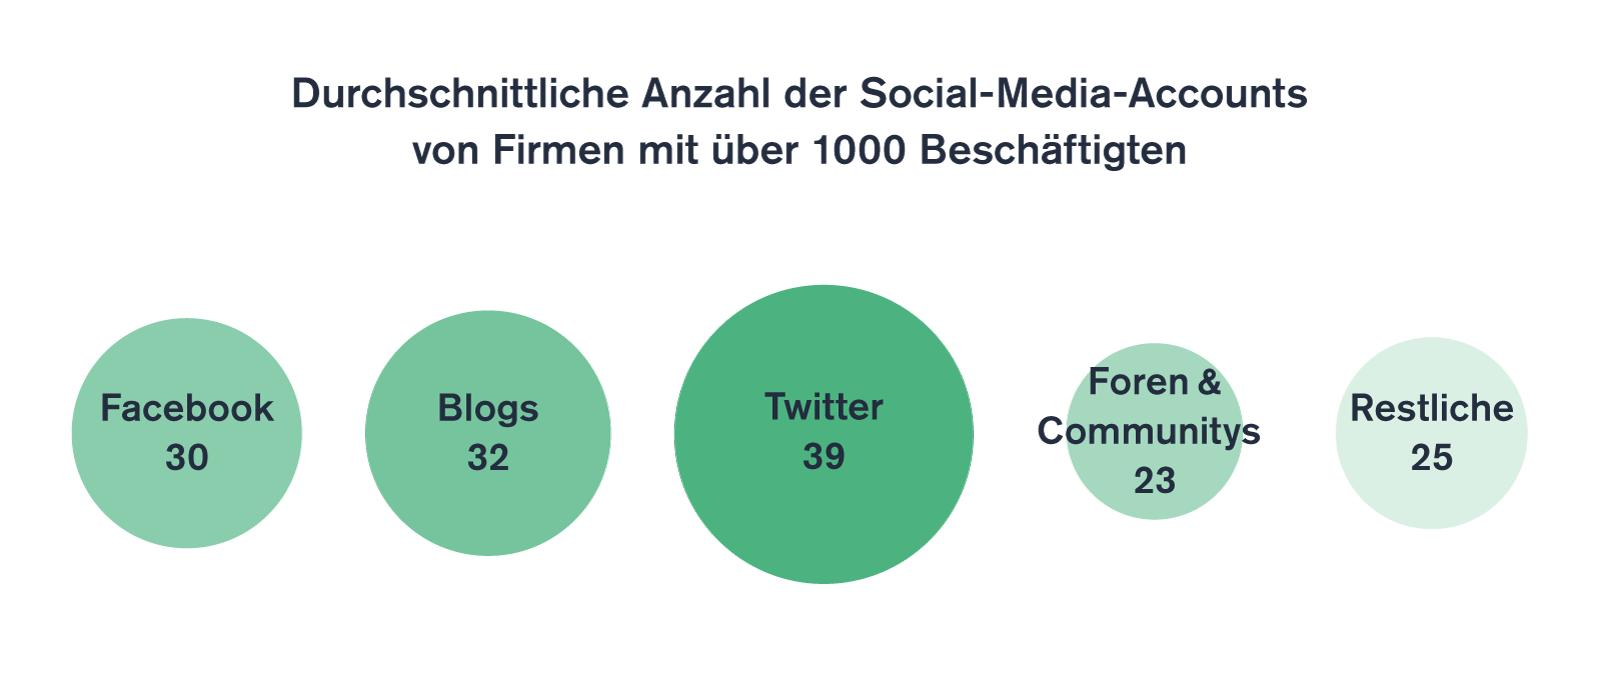 Social-Media-Accounts von Firmen